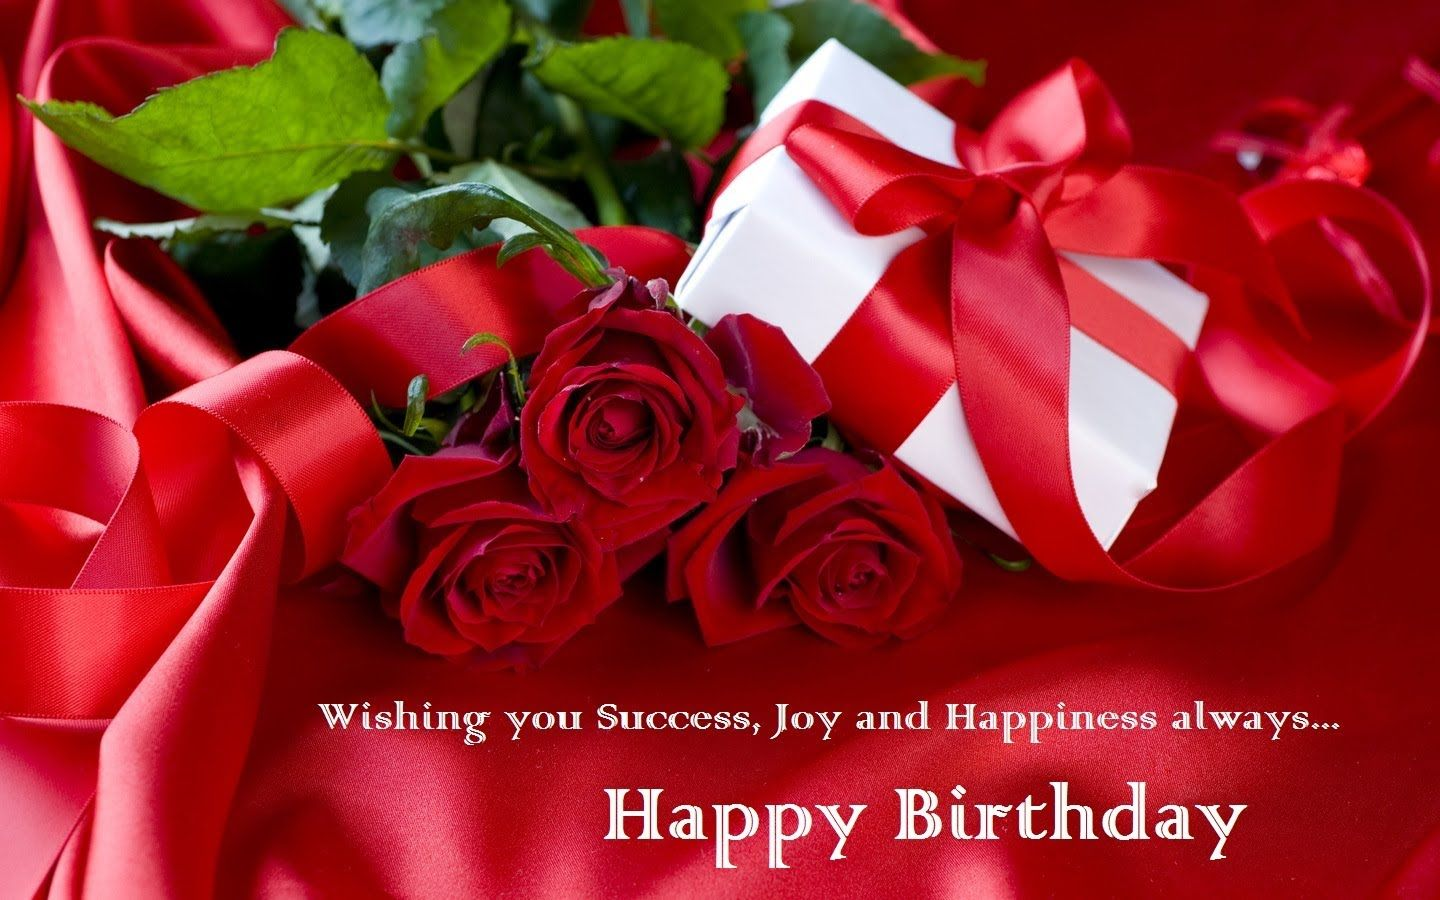 Birthday SongHappy Birthday Songhappy birthday to you song – Birthday Song Greetings